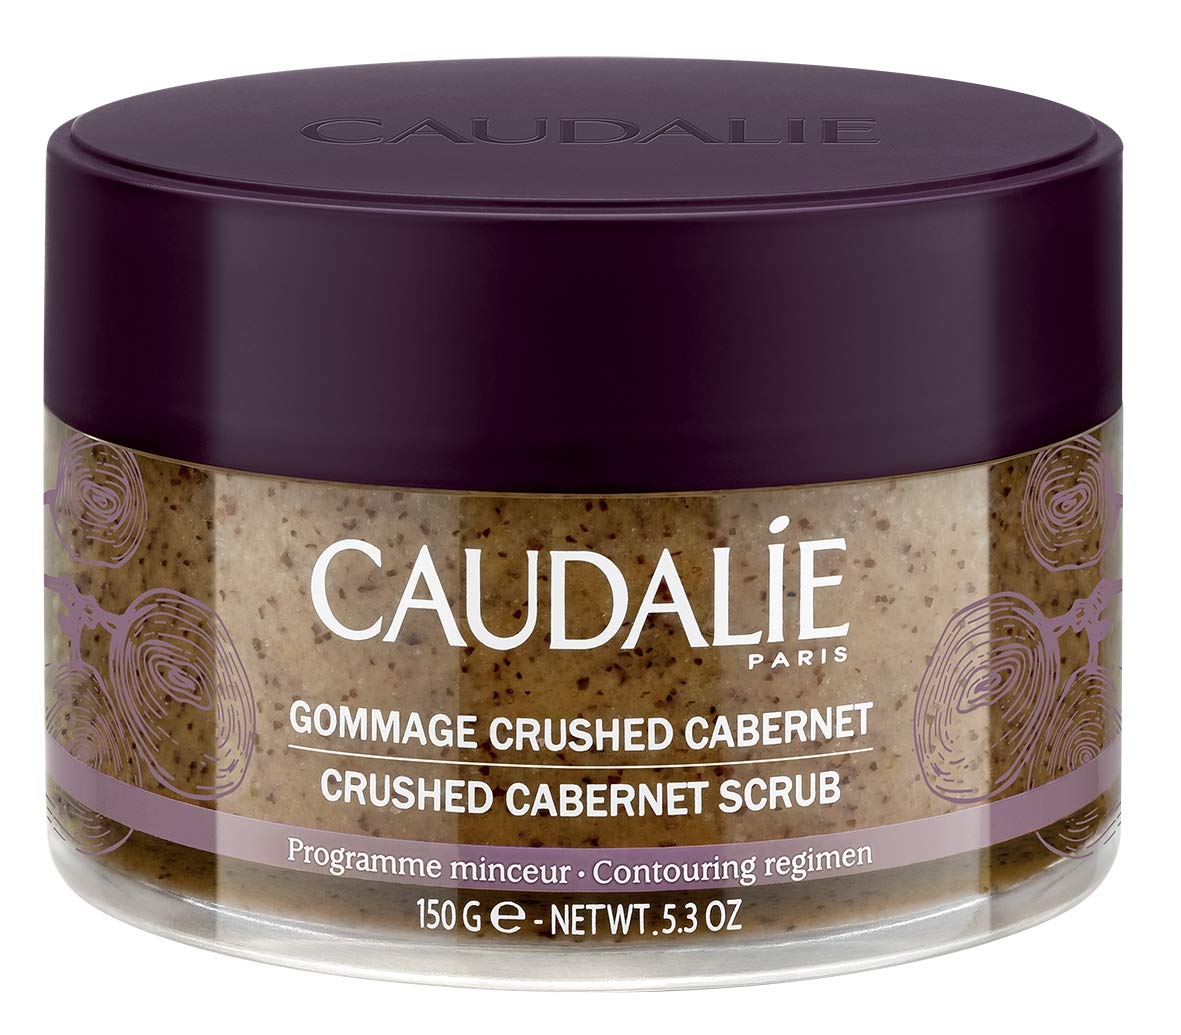 CAUDALIE GOMMAGE CRUSHED CABERNET 150G 160091353031